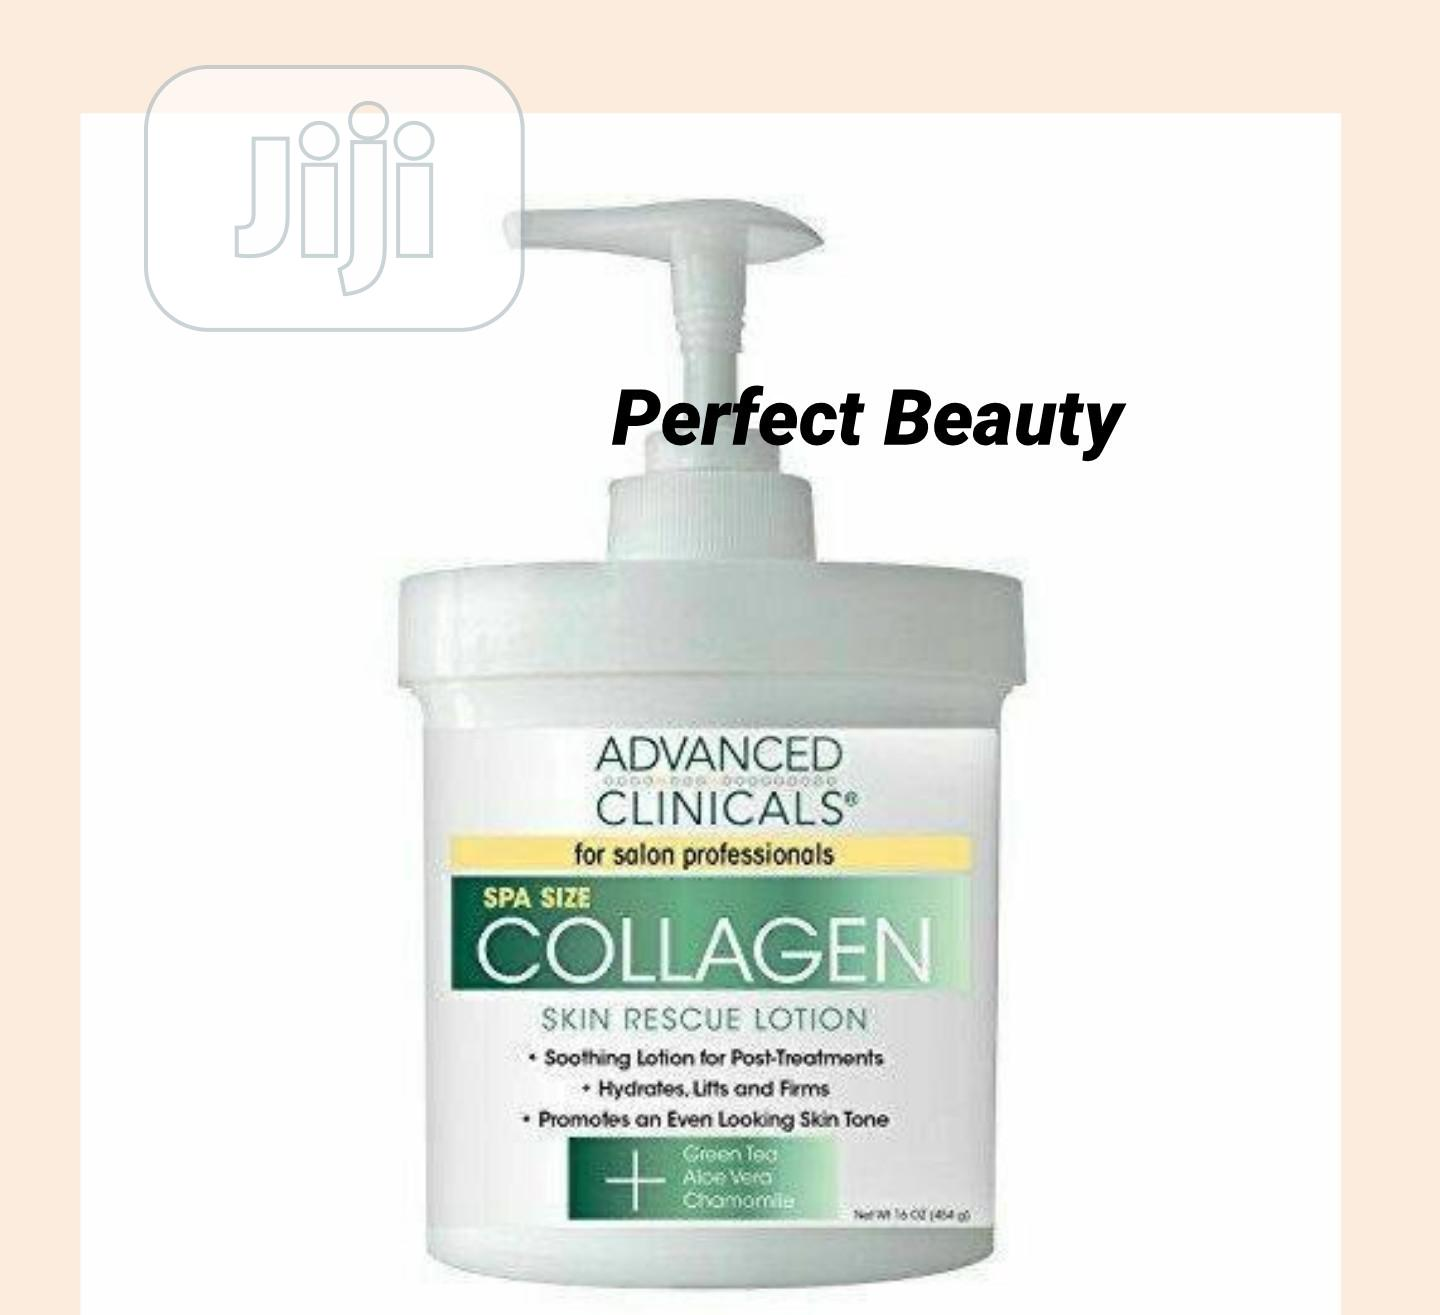 Advanced Clinicals Collagen Skin Rescue Lotion 454g